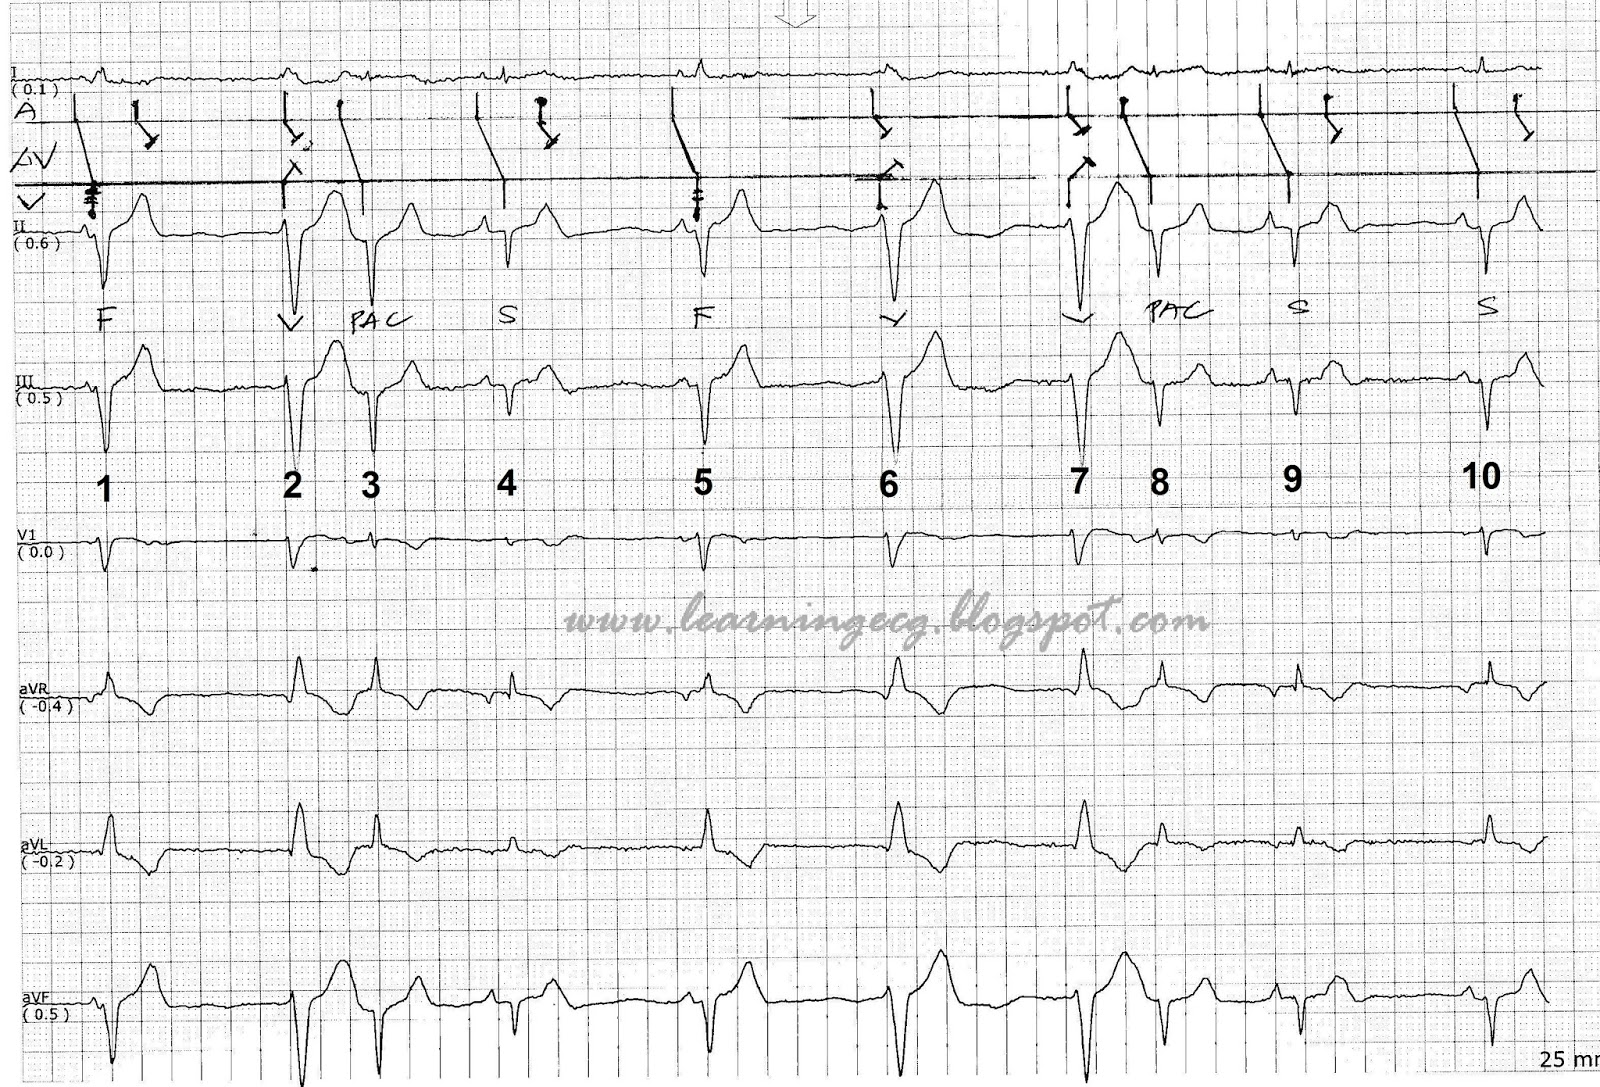 ECG Rhythms: Do we have the same ladder diagram?